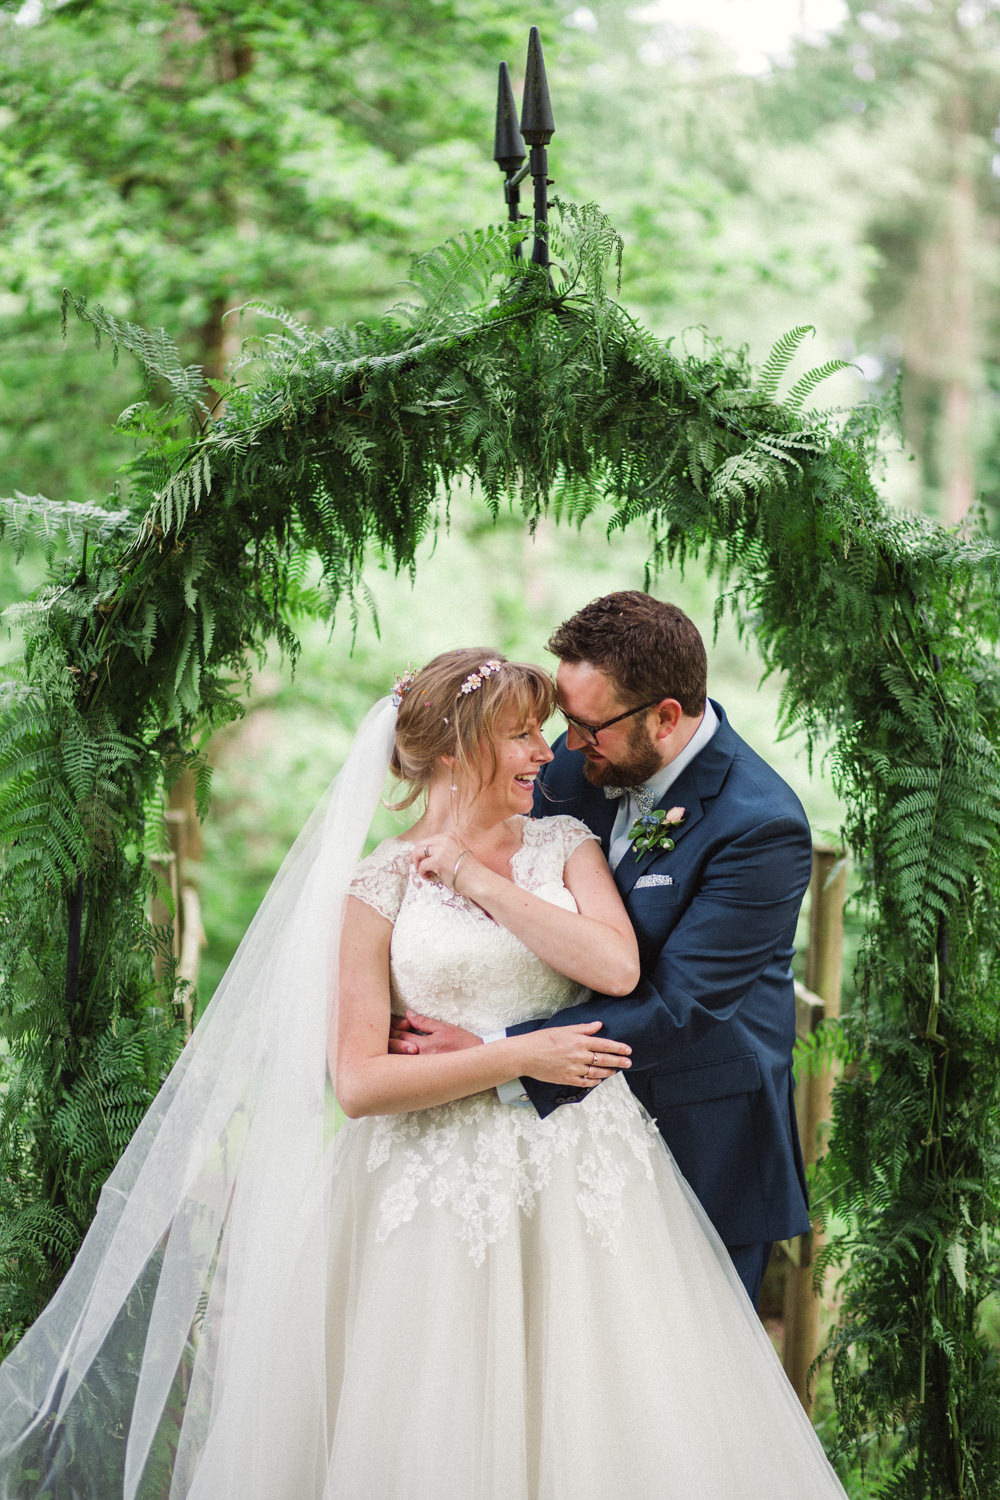 Bride Bridal Ballerina Length Dress Lace Sleeves Navy Suit Groom Veil Greenery Foliage Archway Middle Coombe Farm Wedding Emma Stoner Photo